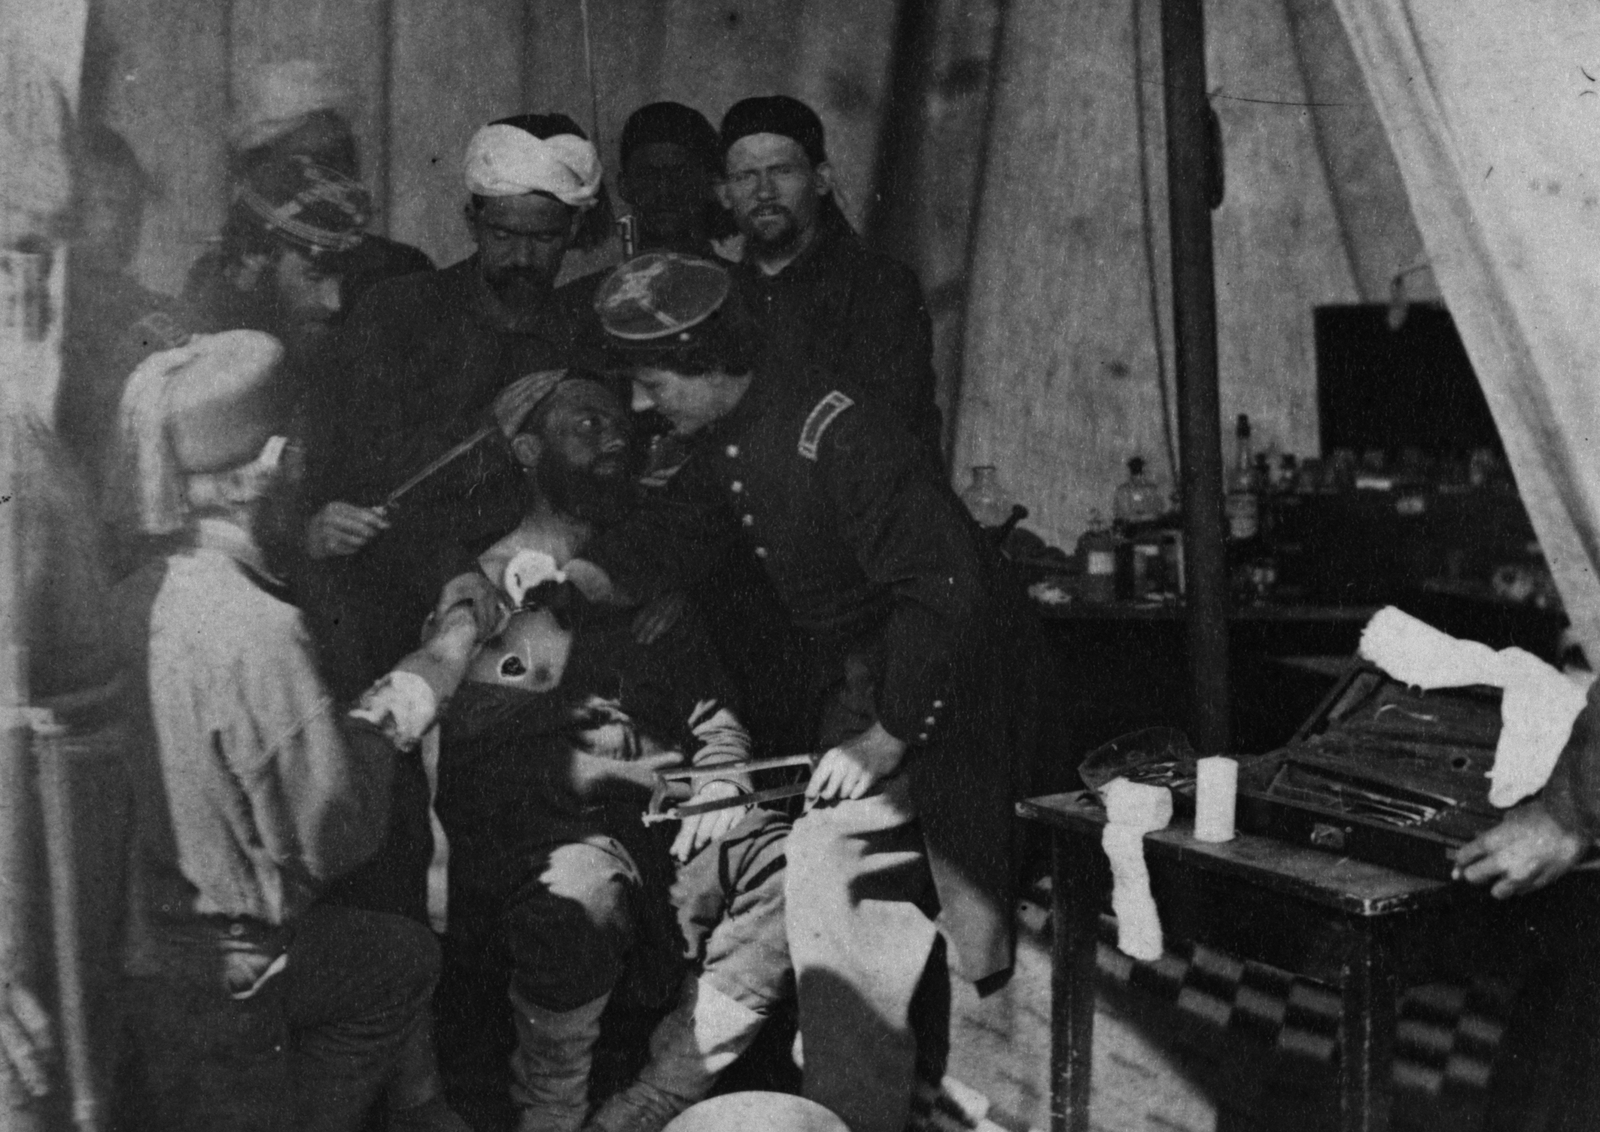 Image - French solders tending to an injured colleague in 1863. Photo: George Stacy/Buyenlarge/Getty Images